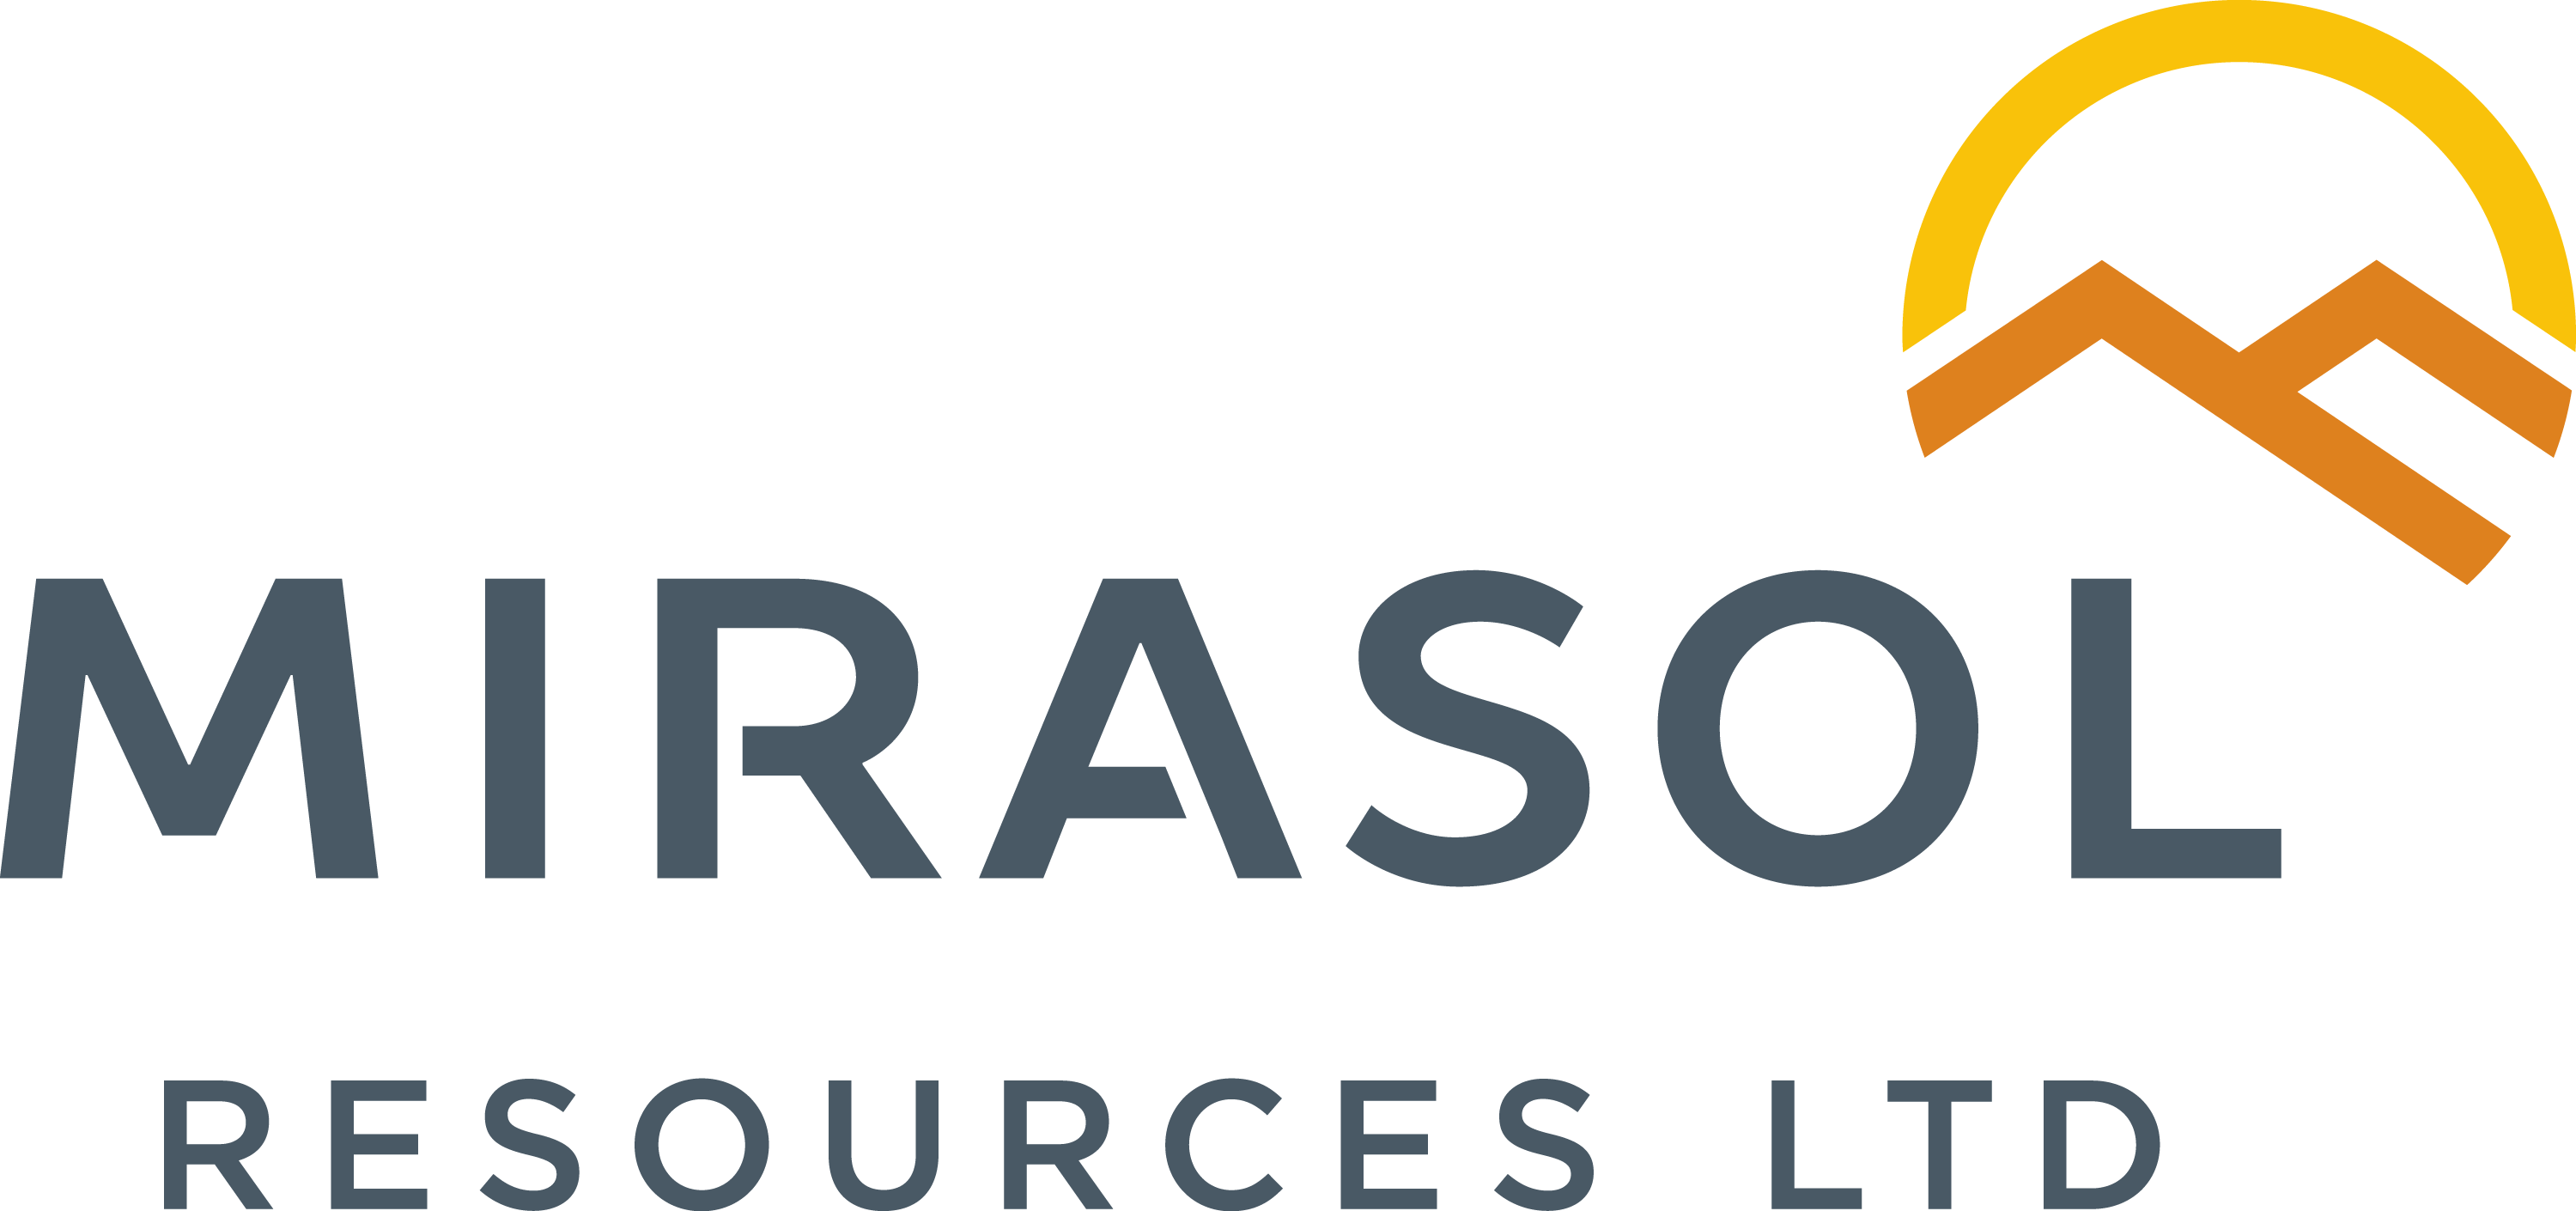 Mirasol Resources Starts Drilling Program at Self-funded Inca Gold Project, Chile